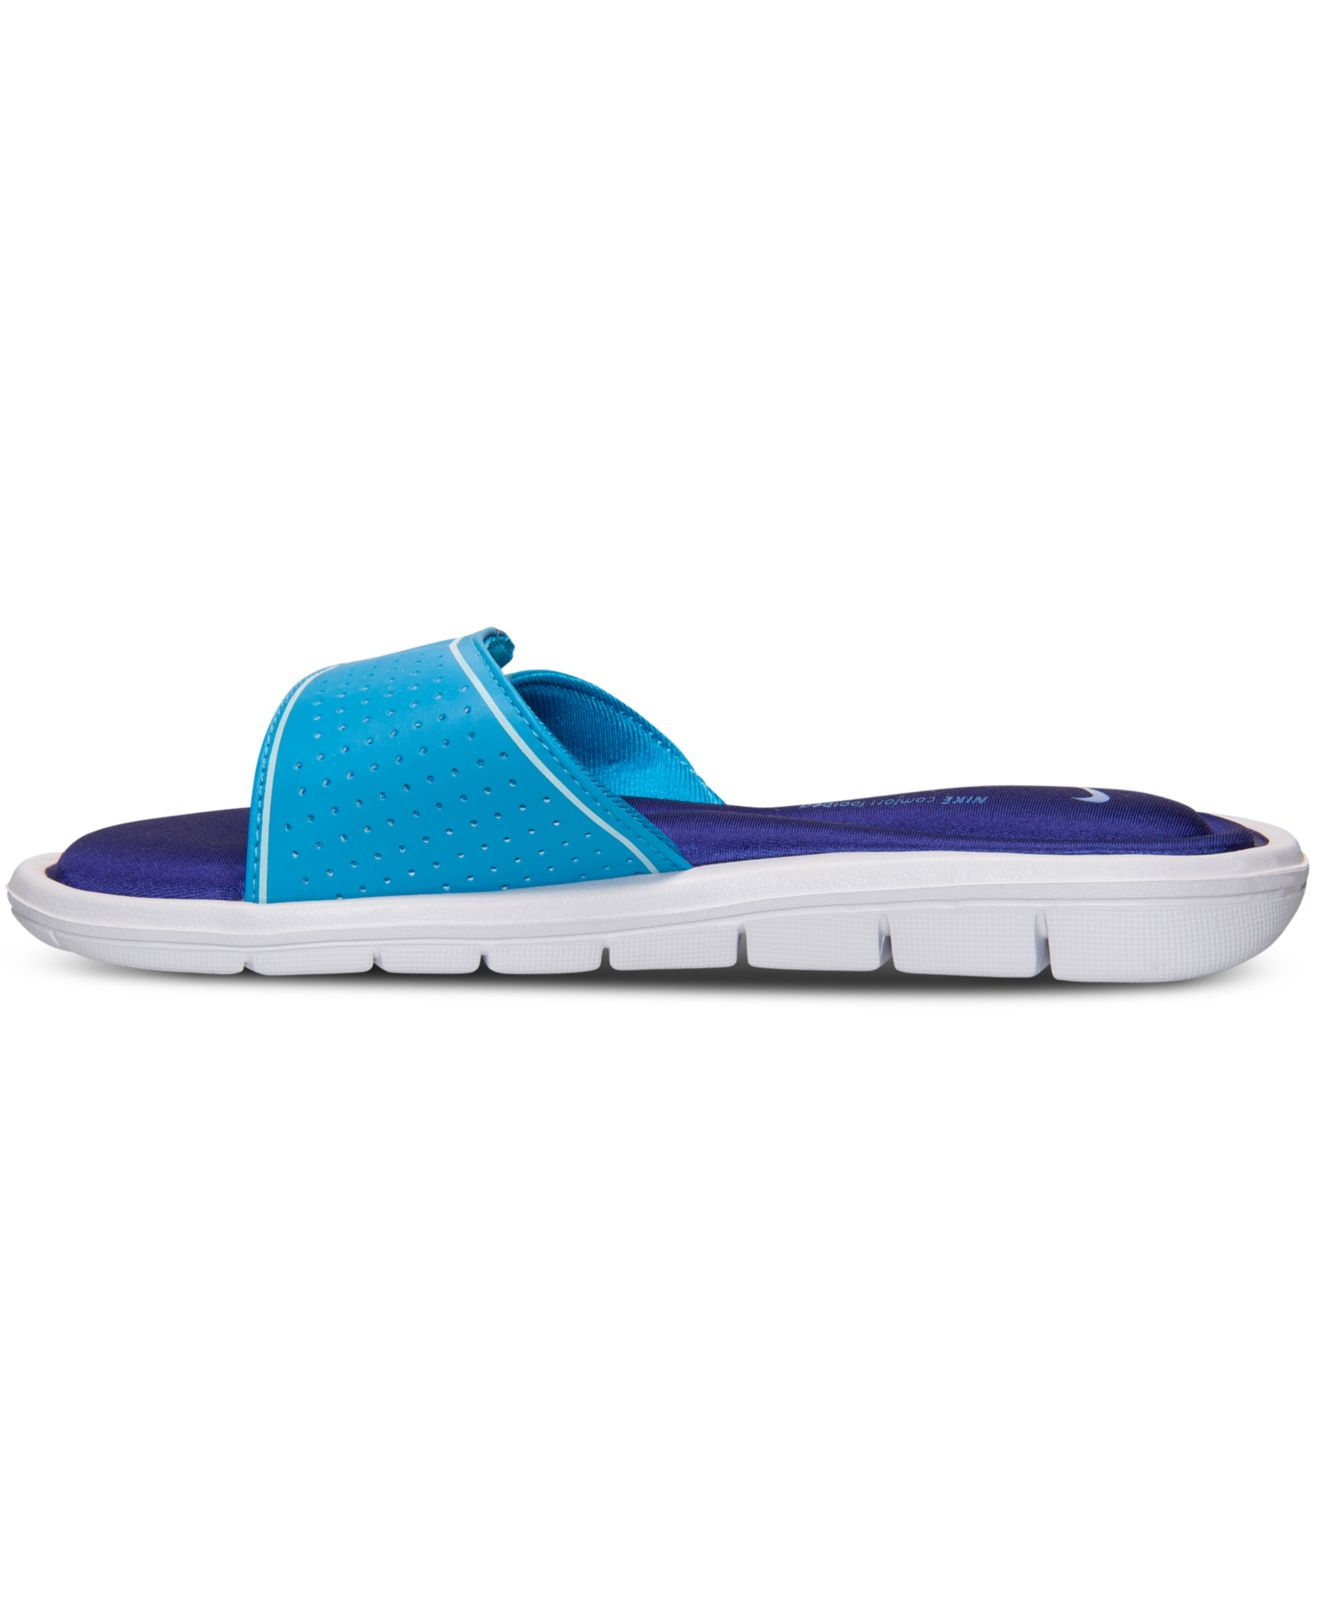 12096c49eb2733 Lyst - Nike Women s Comfort Slide Sandals From Finish Line in Blue